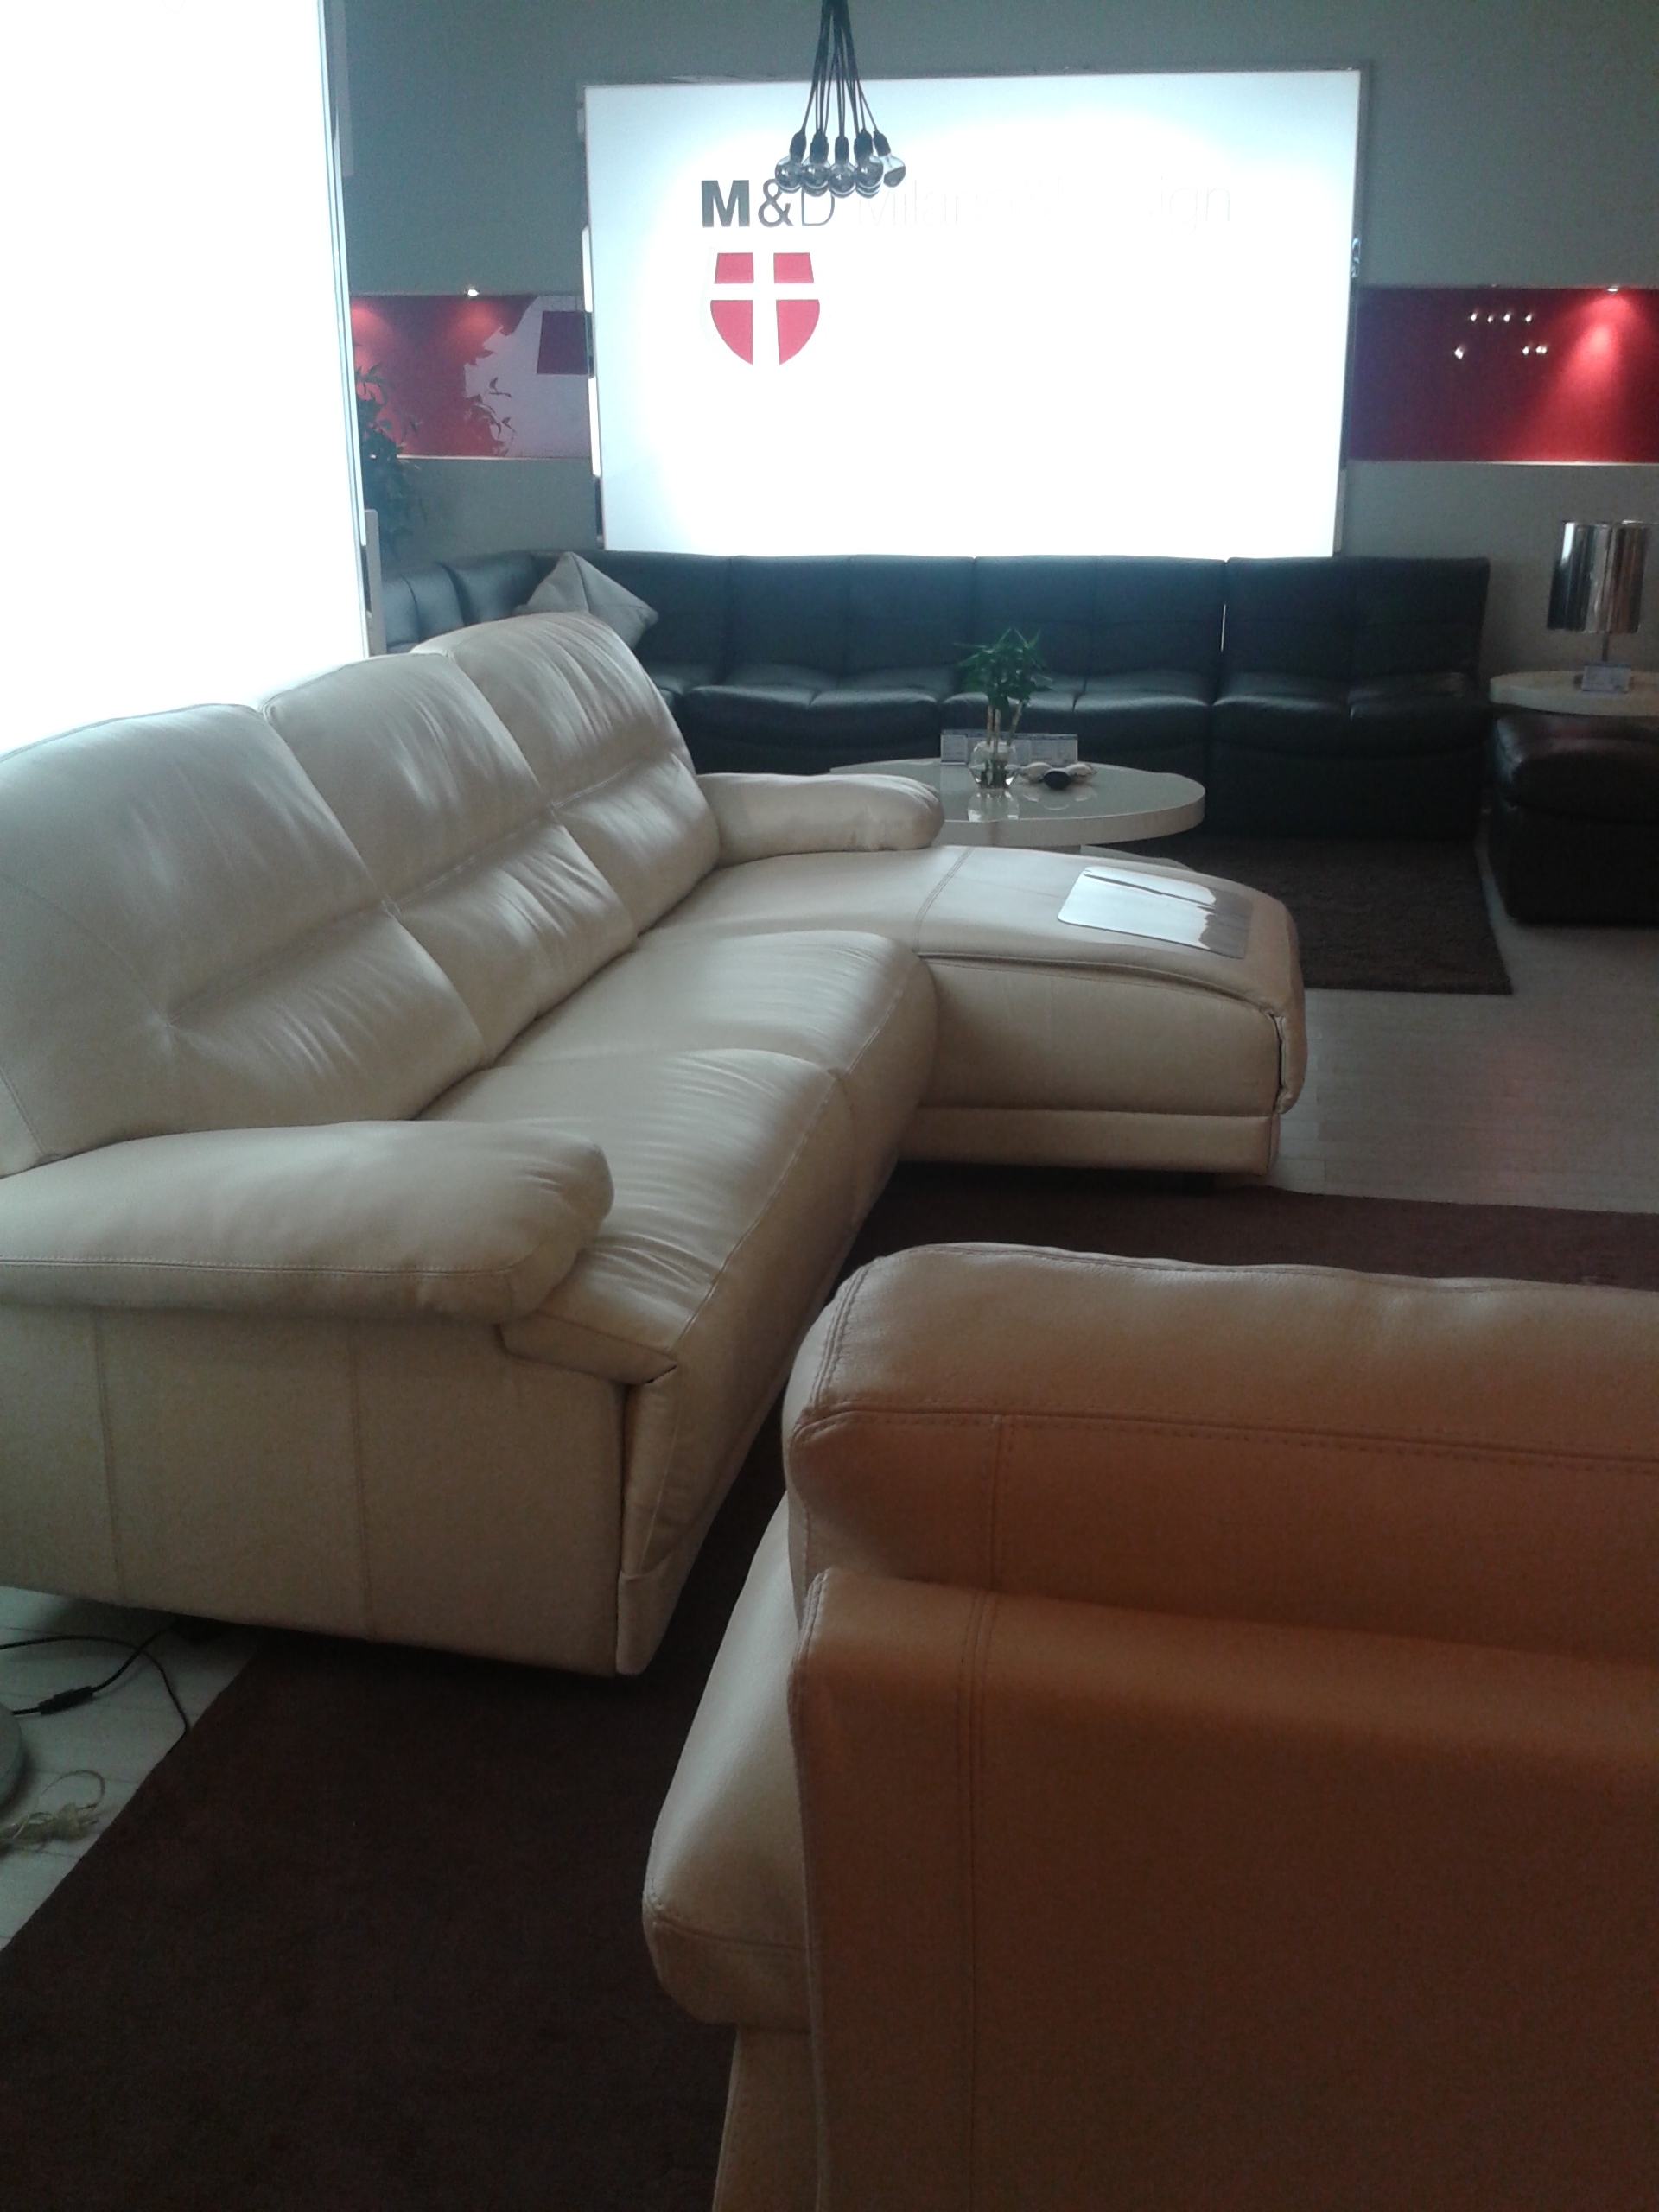 Seriously, This Is A Good Place To Have A Look At, If You Are Looking For  Furniture In Beijing. The Brands You Can Find There Are Really Versatile  And It ...